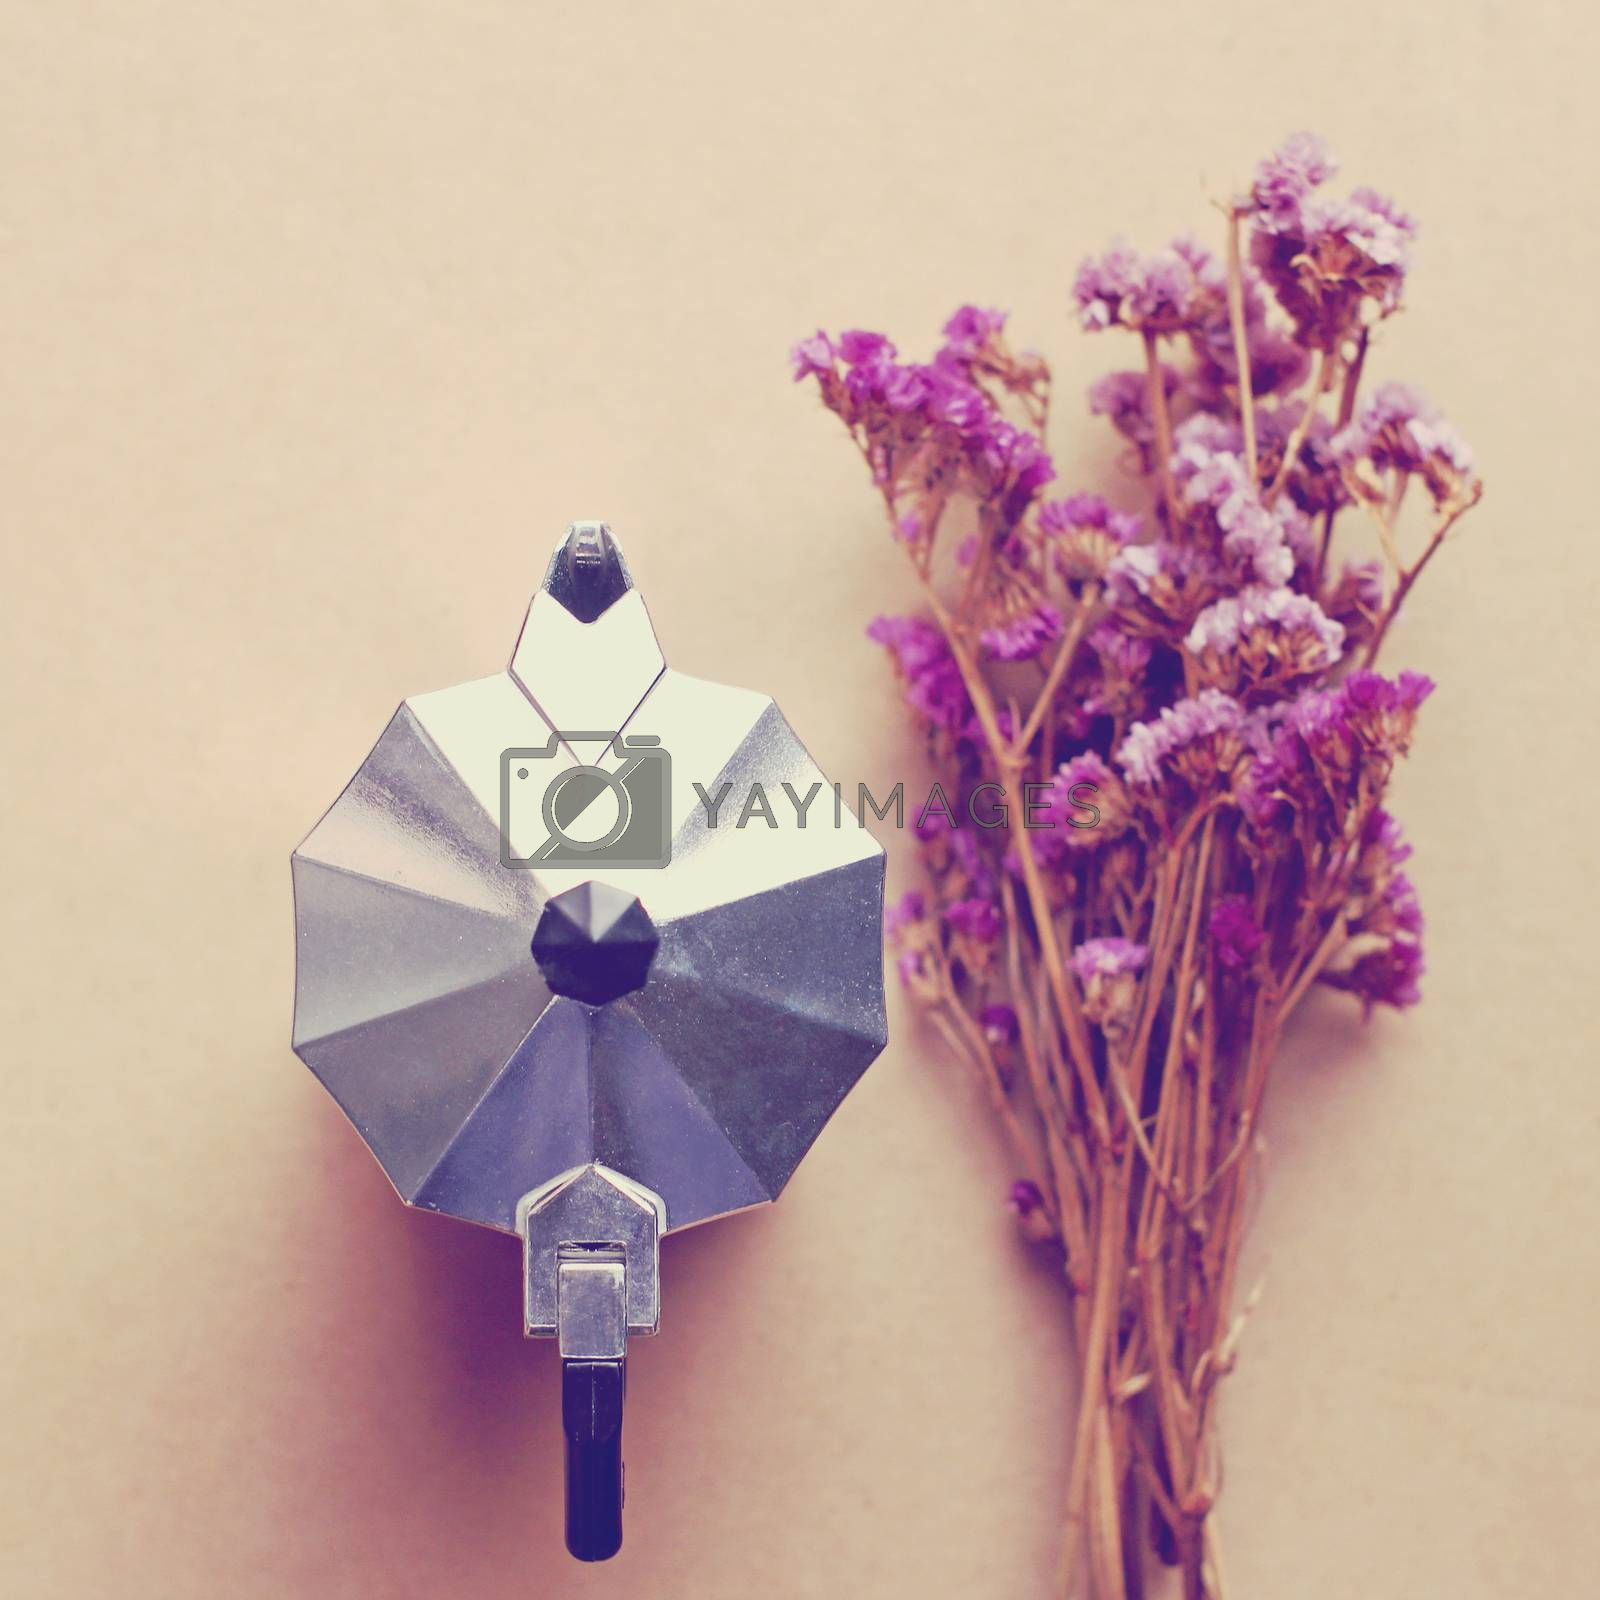 Italian coffee maker and flower with retro filter effect